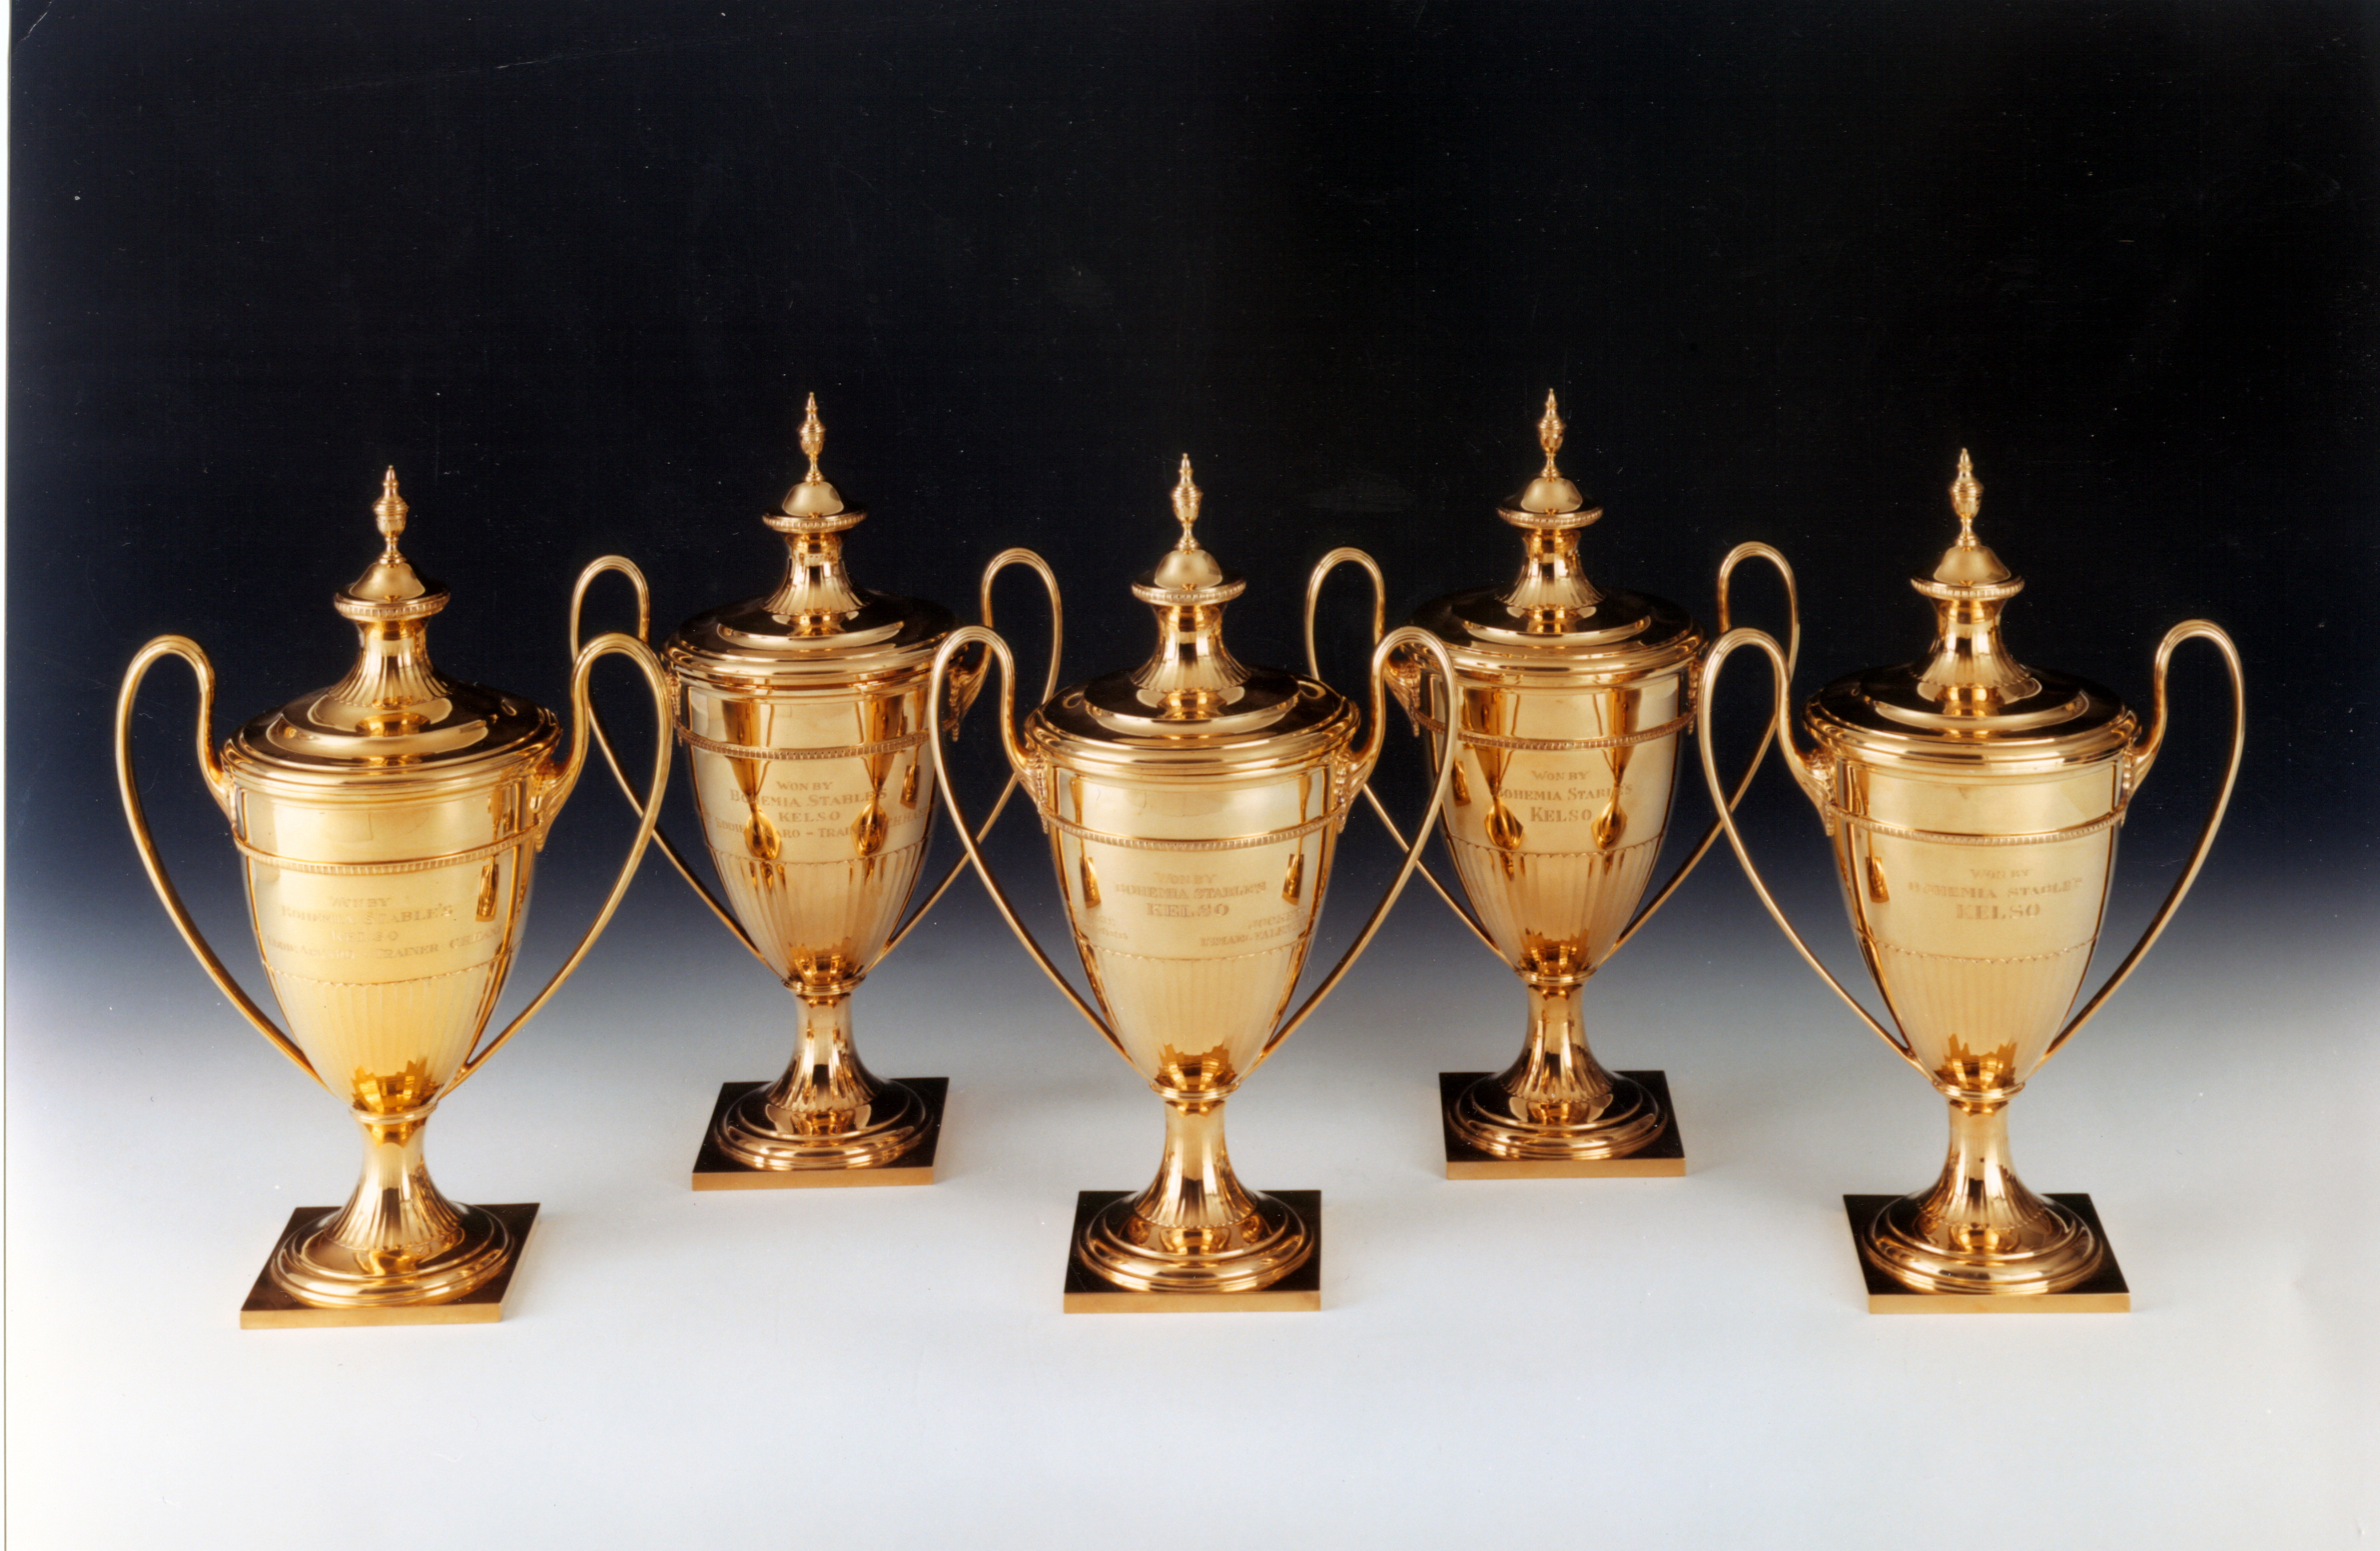 1979.3.1-.5: Jockey Club Gold Cup trophies (1960-1964), won by Kelso, Gift: Mrs. Richard C. duPont